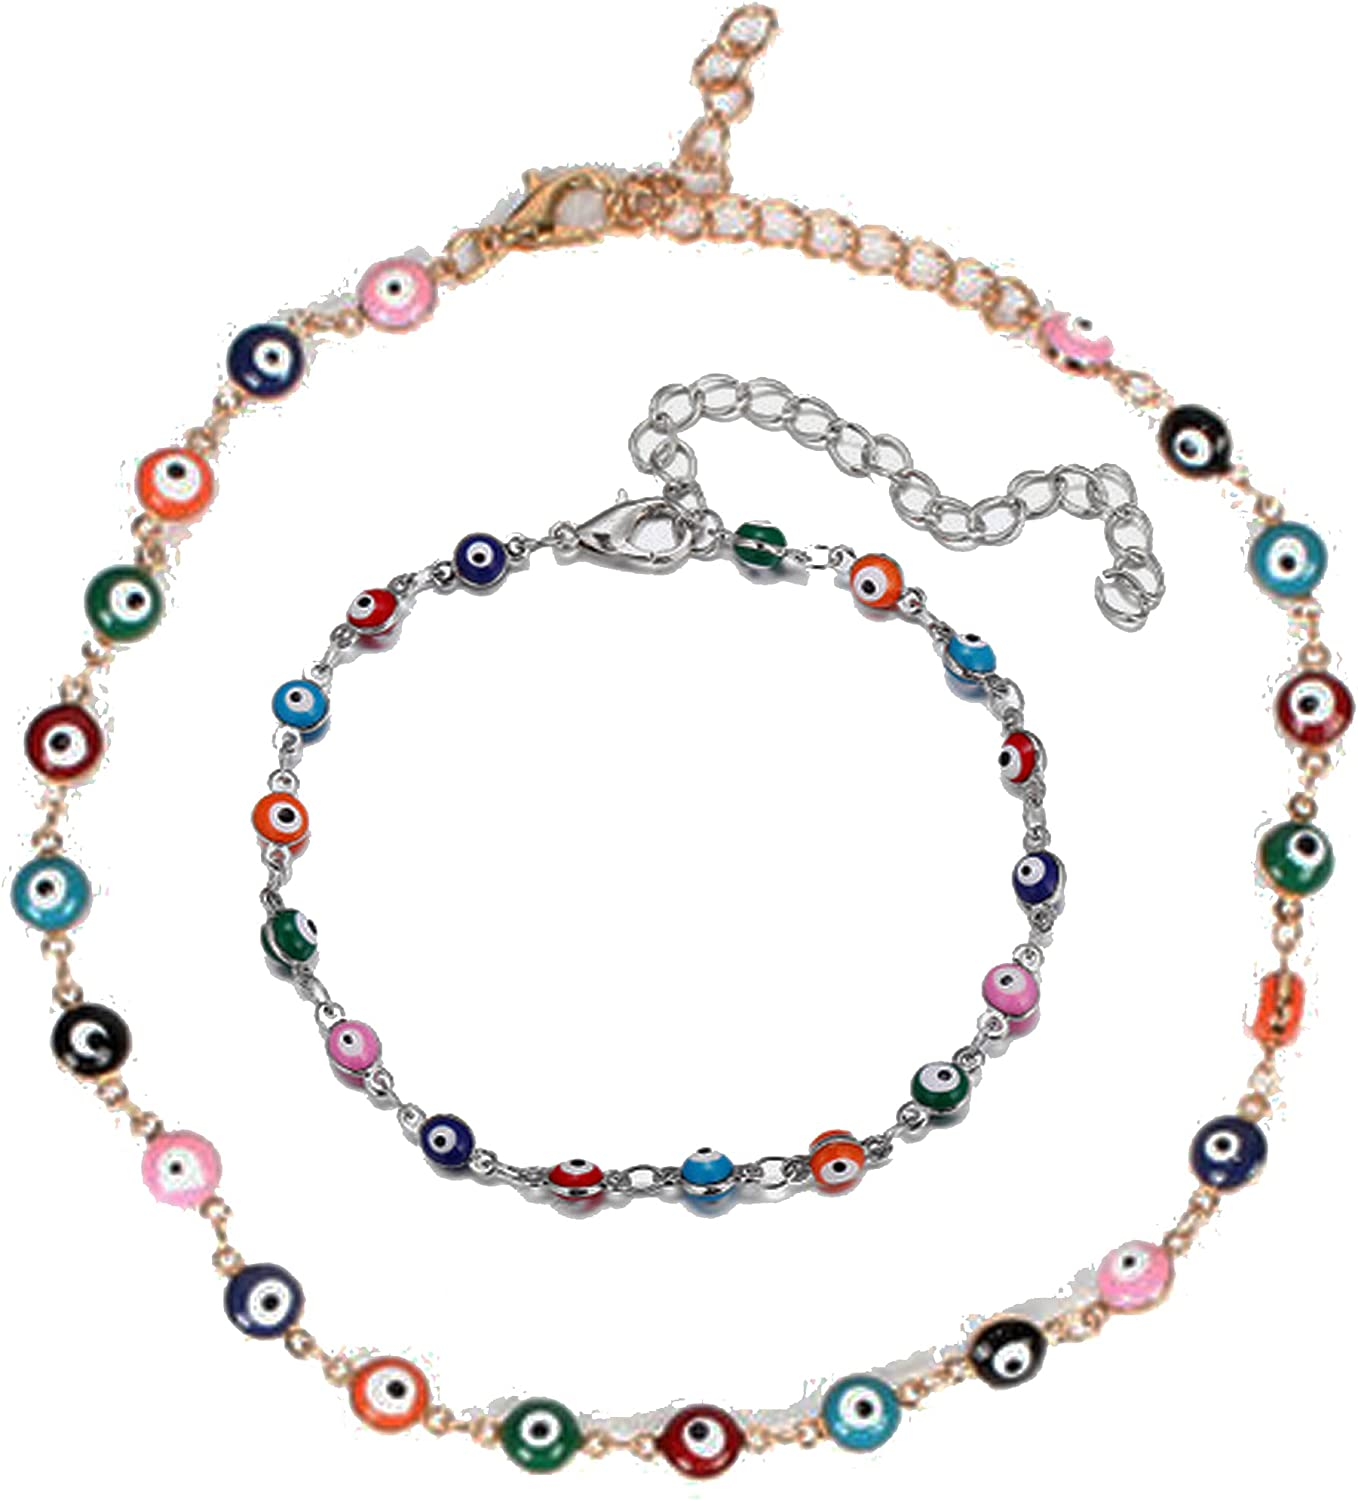 2 Pcs Boho Evil Eyes Choker Necklace Bracelet Set Colorful Beaded Clavicle Chain Necklaces Summer Beach Party Jewelry Adjustable Accessories for Women Girls